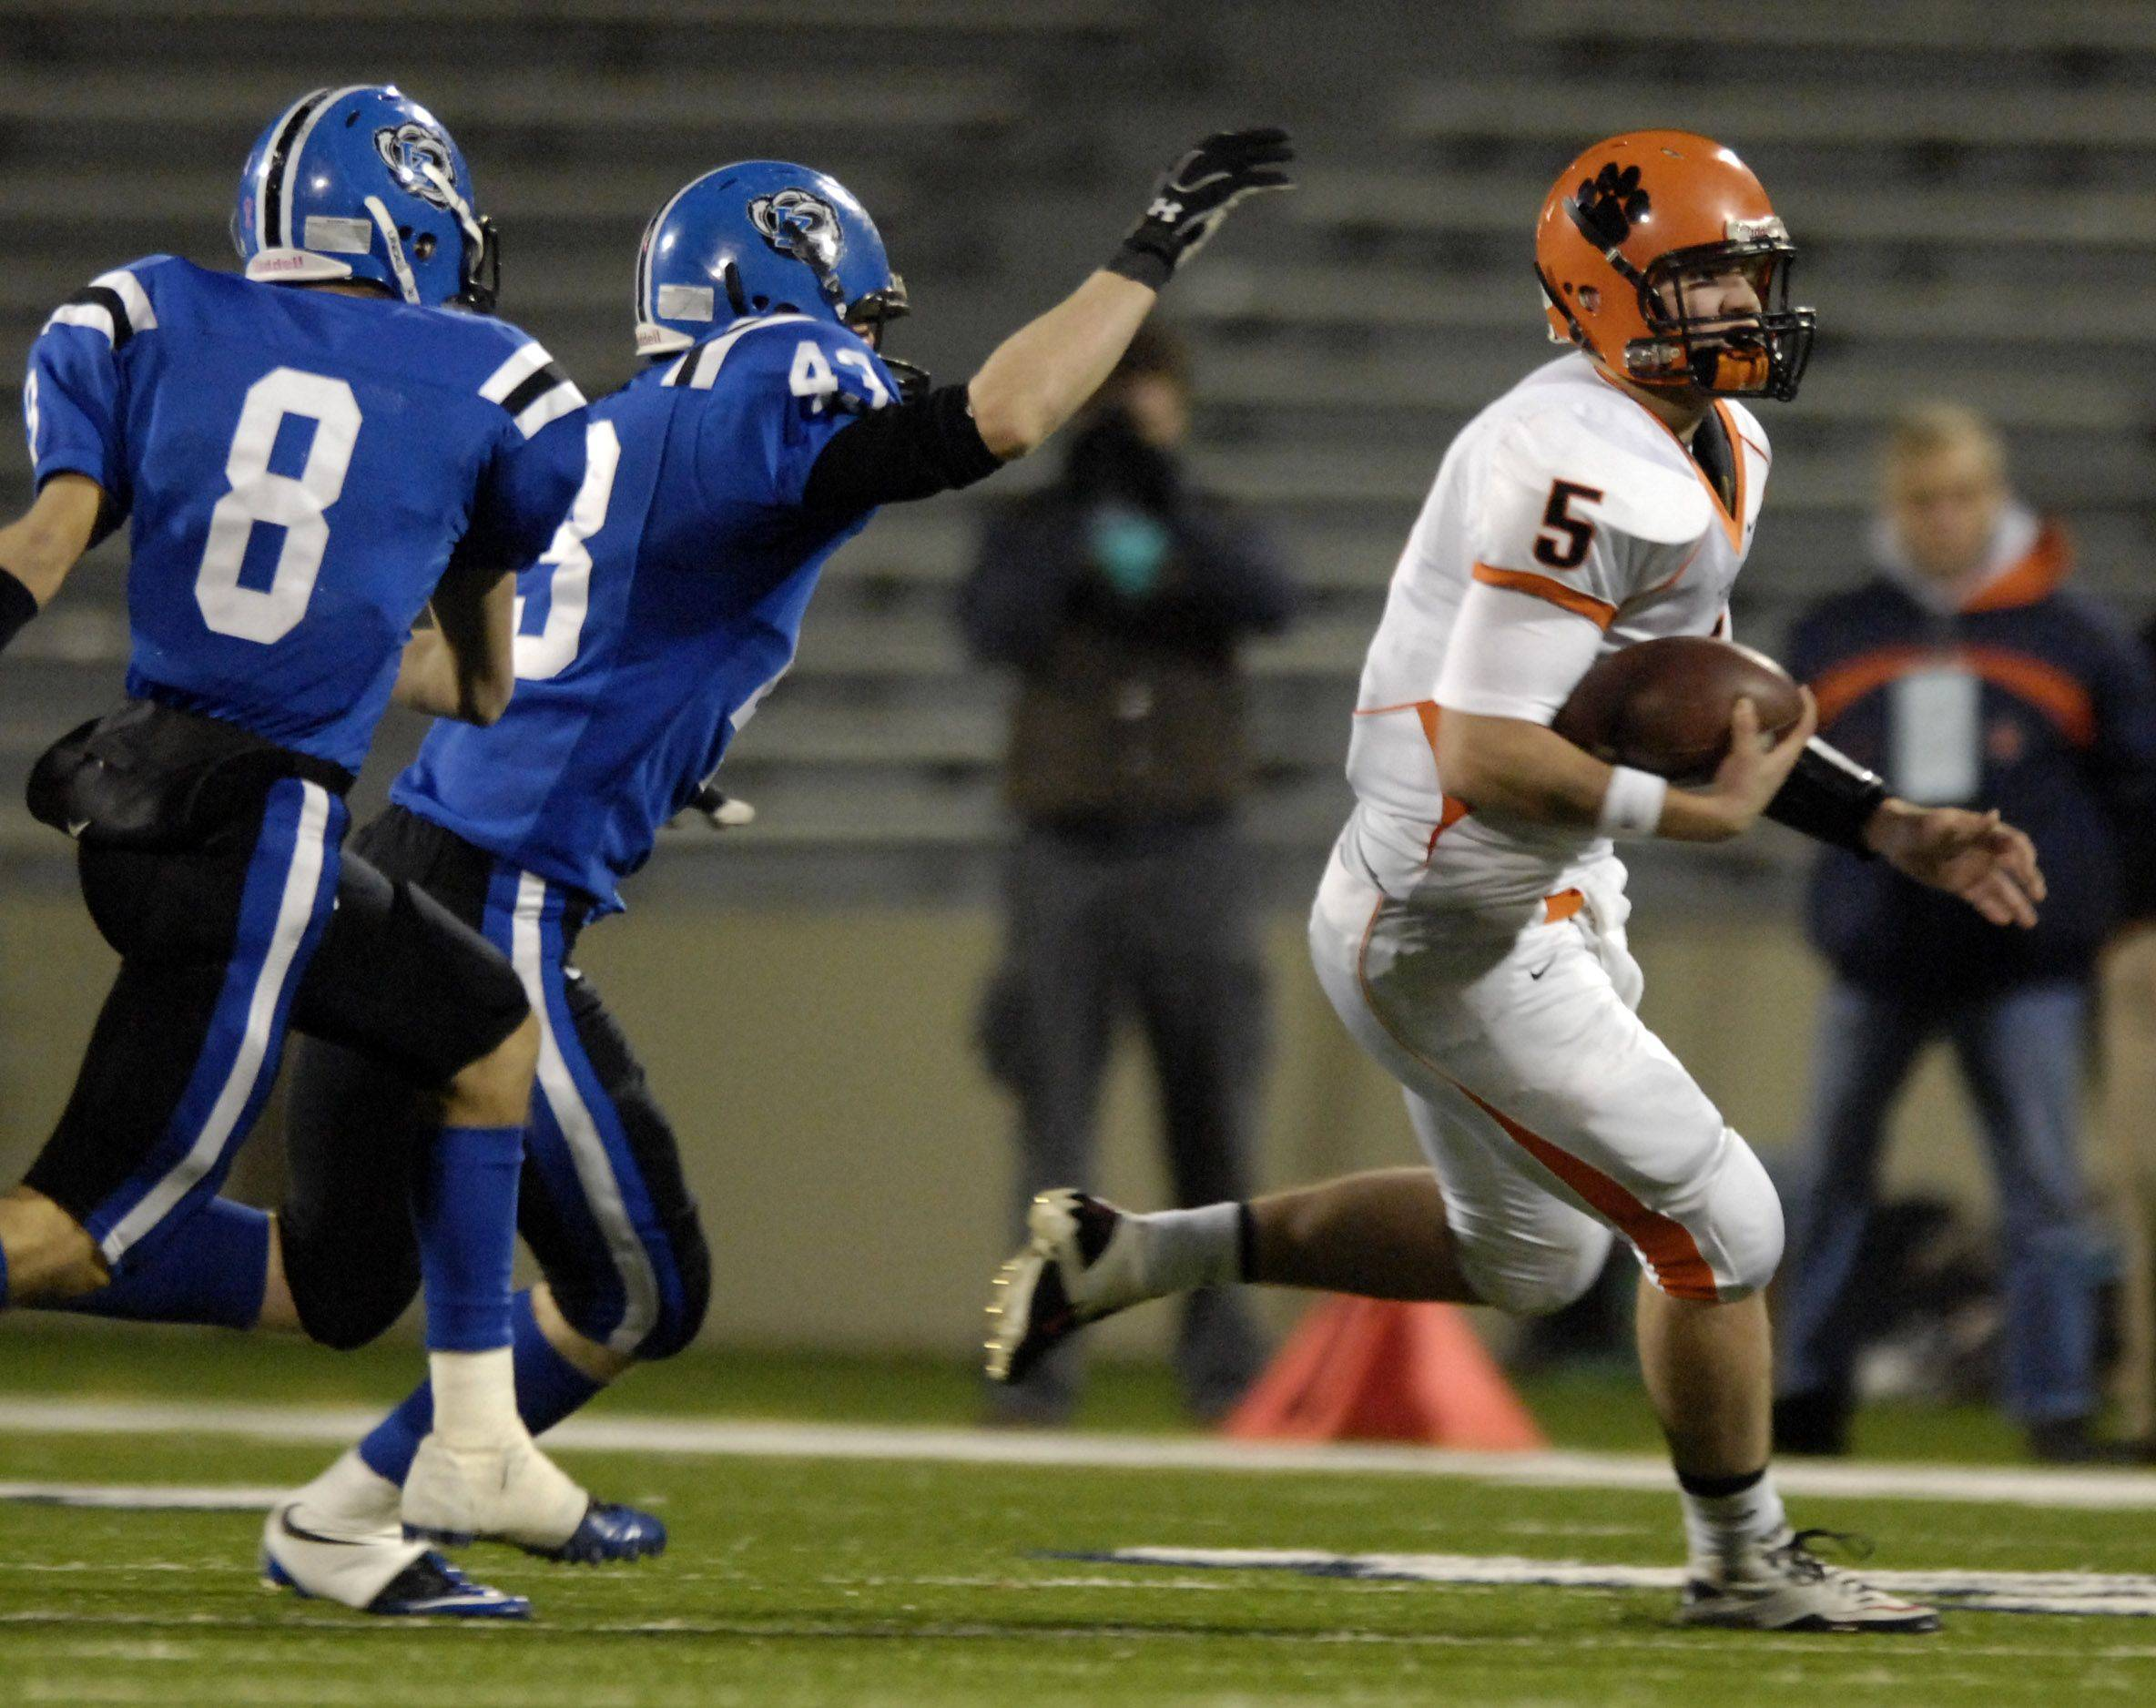 Wheaton Warrenville South quarterback Reilly O'Toole escapes the rush and takes it outside against Lake Zurich during the Class 7A state final in Champaign Saturday.